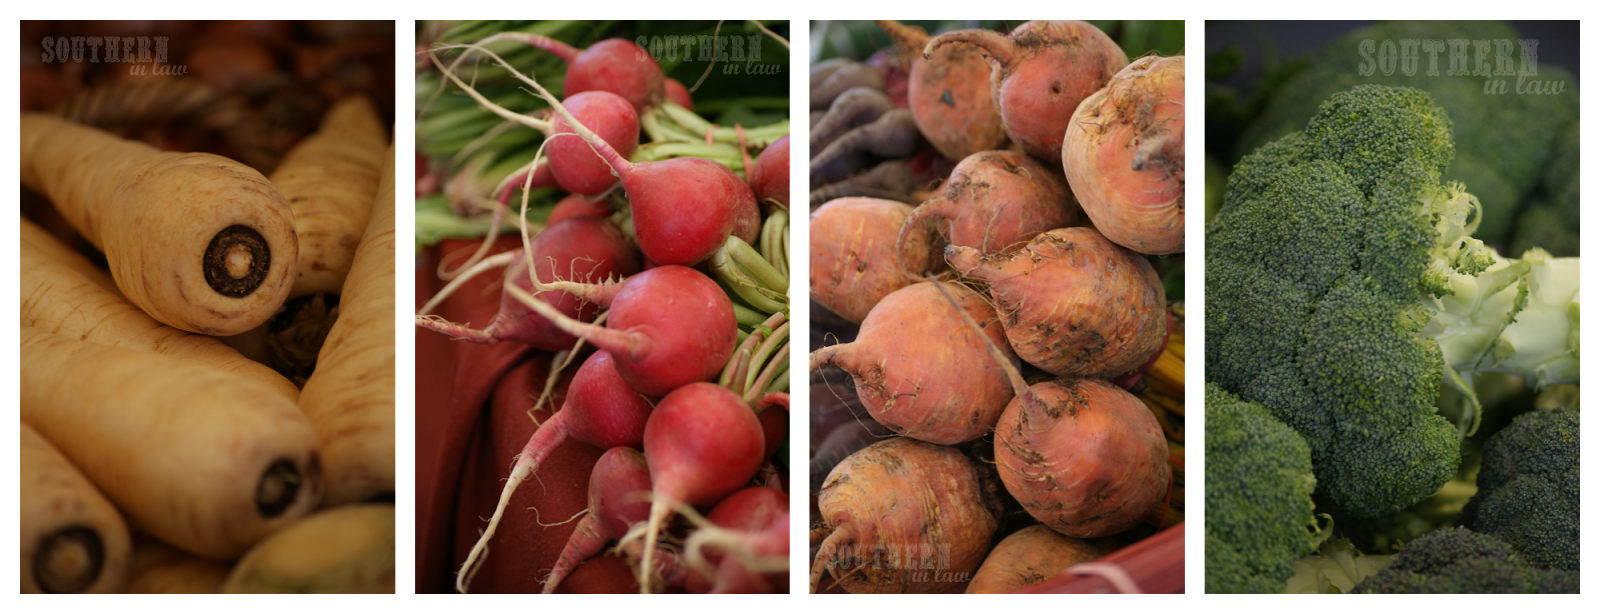 Fresh Fruit and Vegetables - Farmers Markets in Sydney Australia